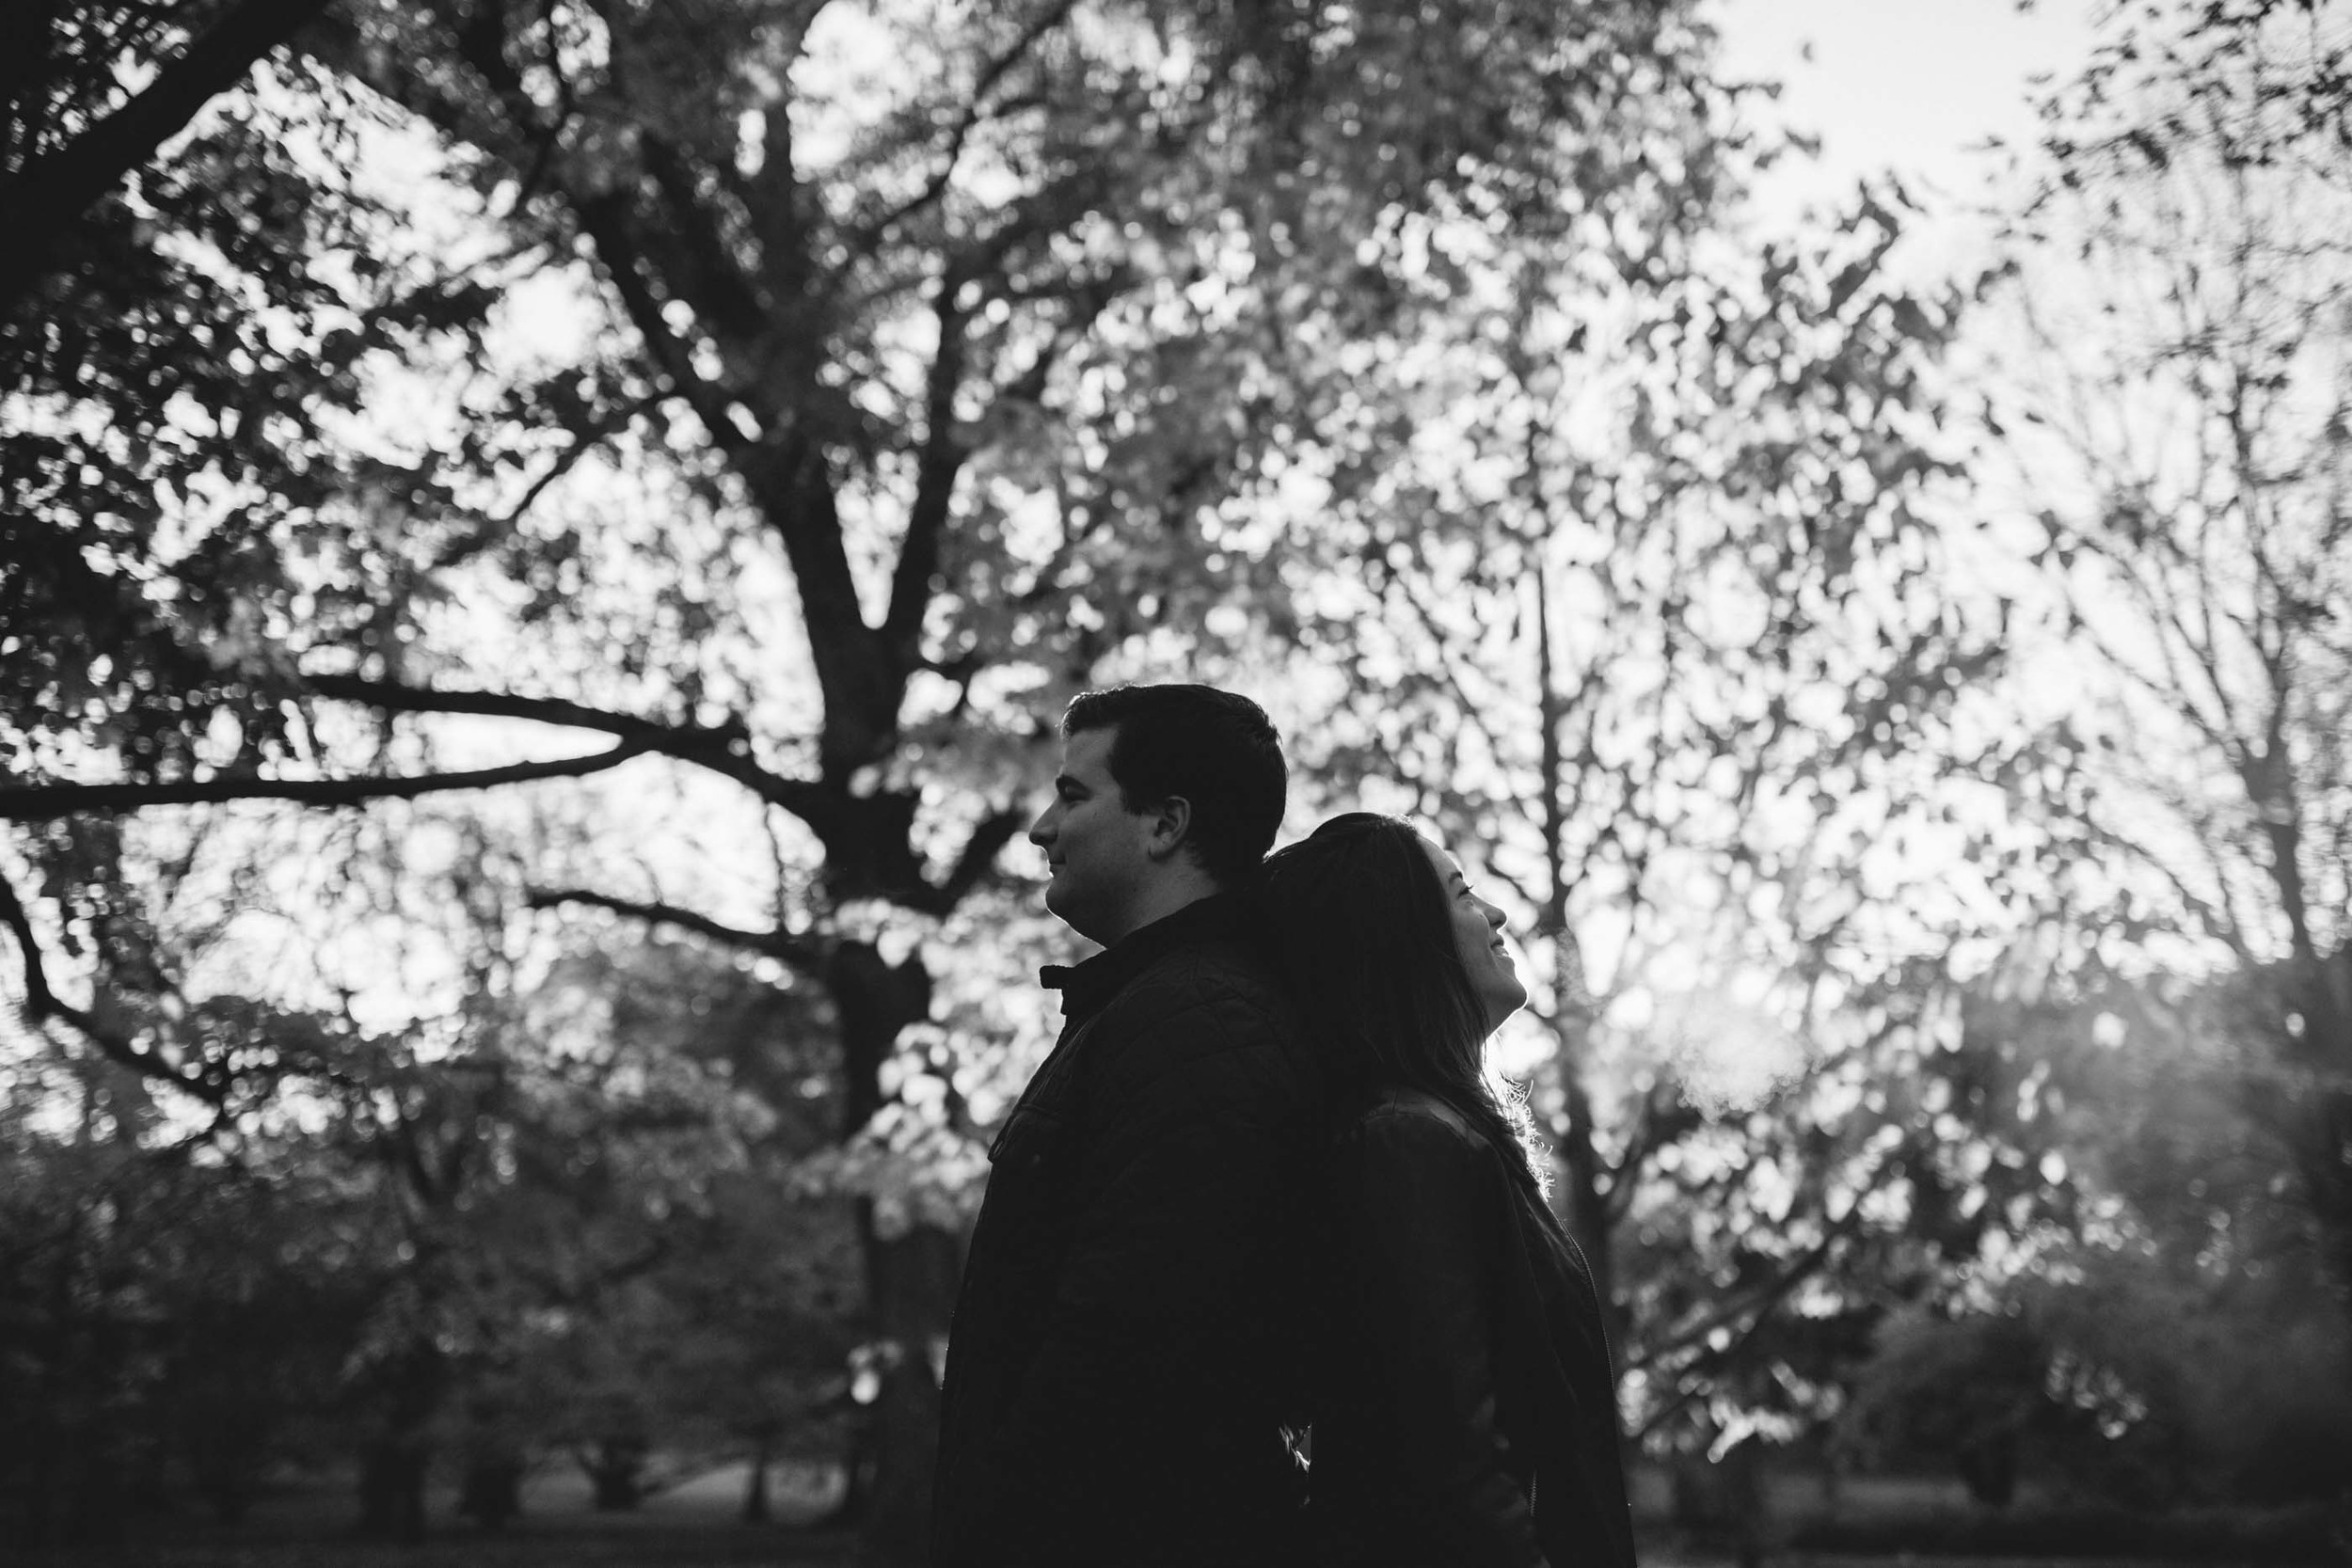 Arboretum-Engagement-Photographer-2.jpg